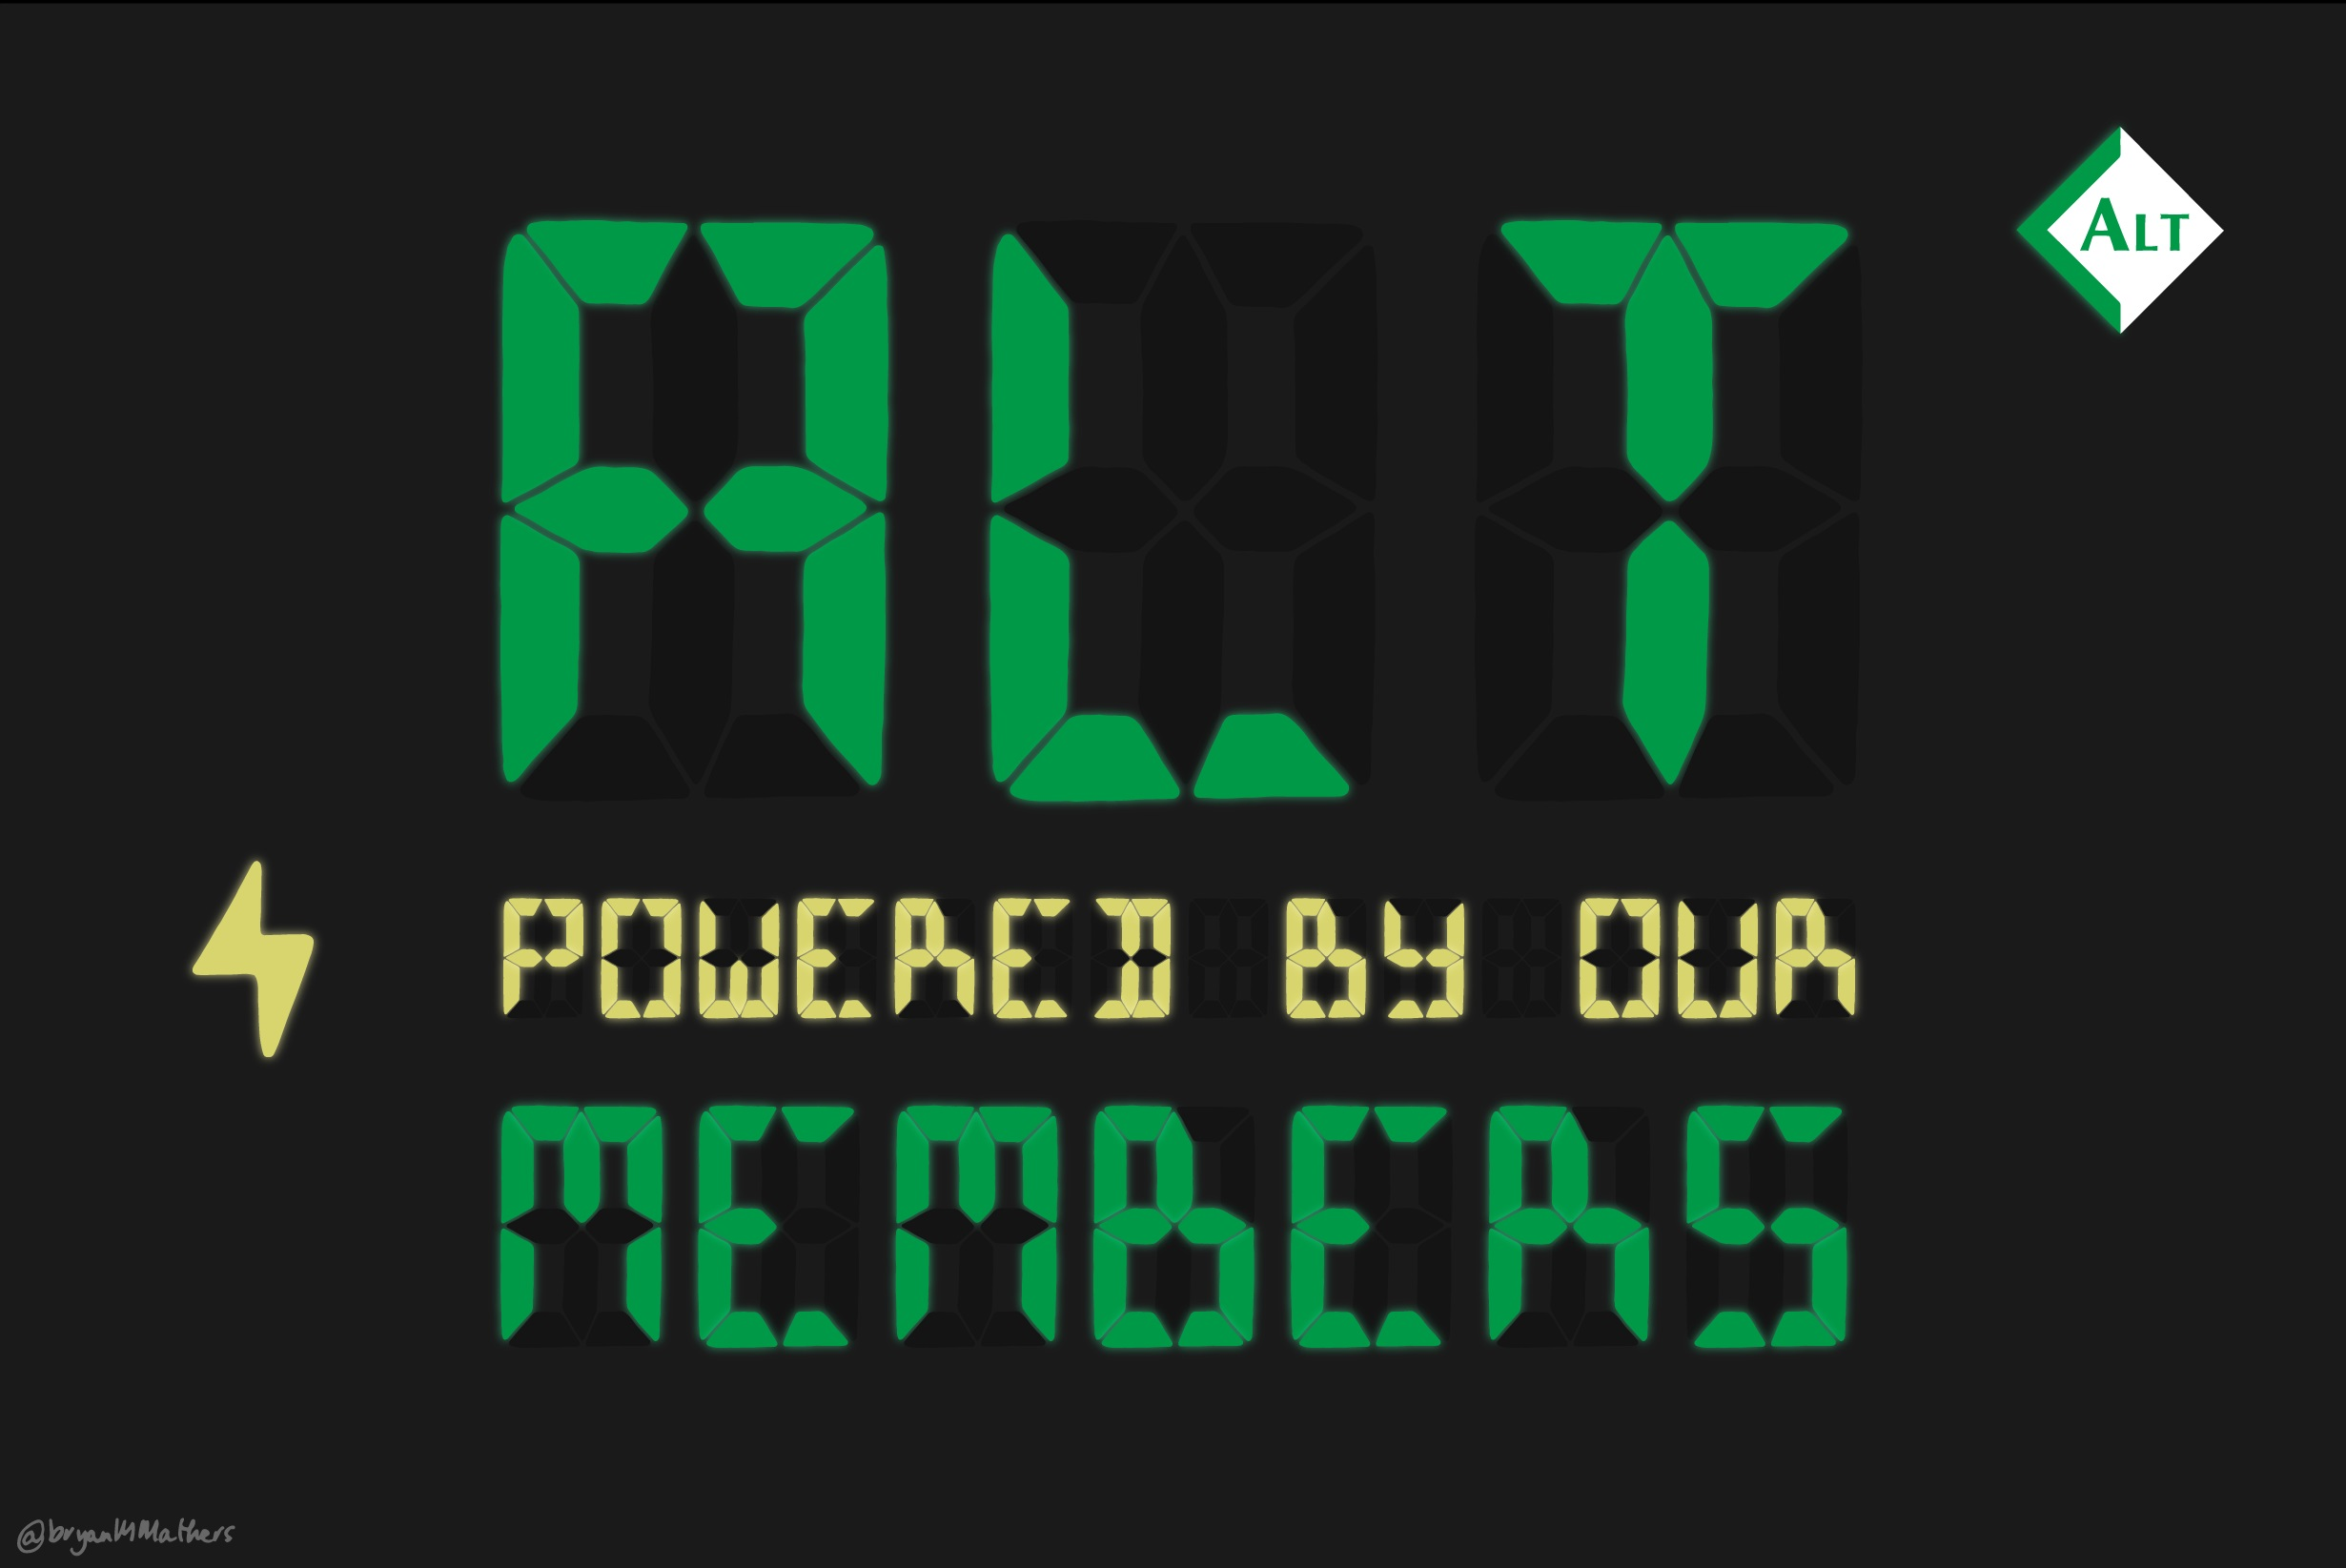 ALT - powered by our Members